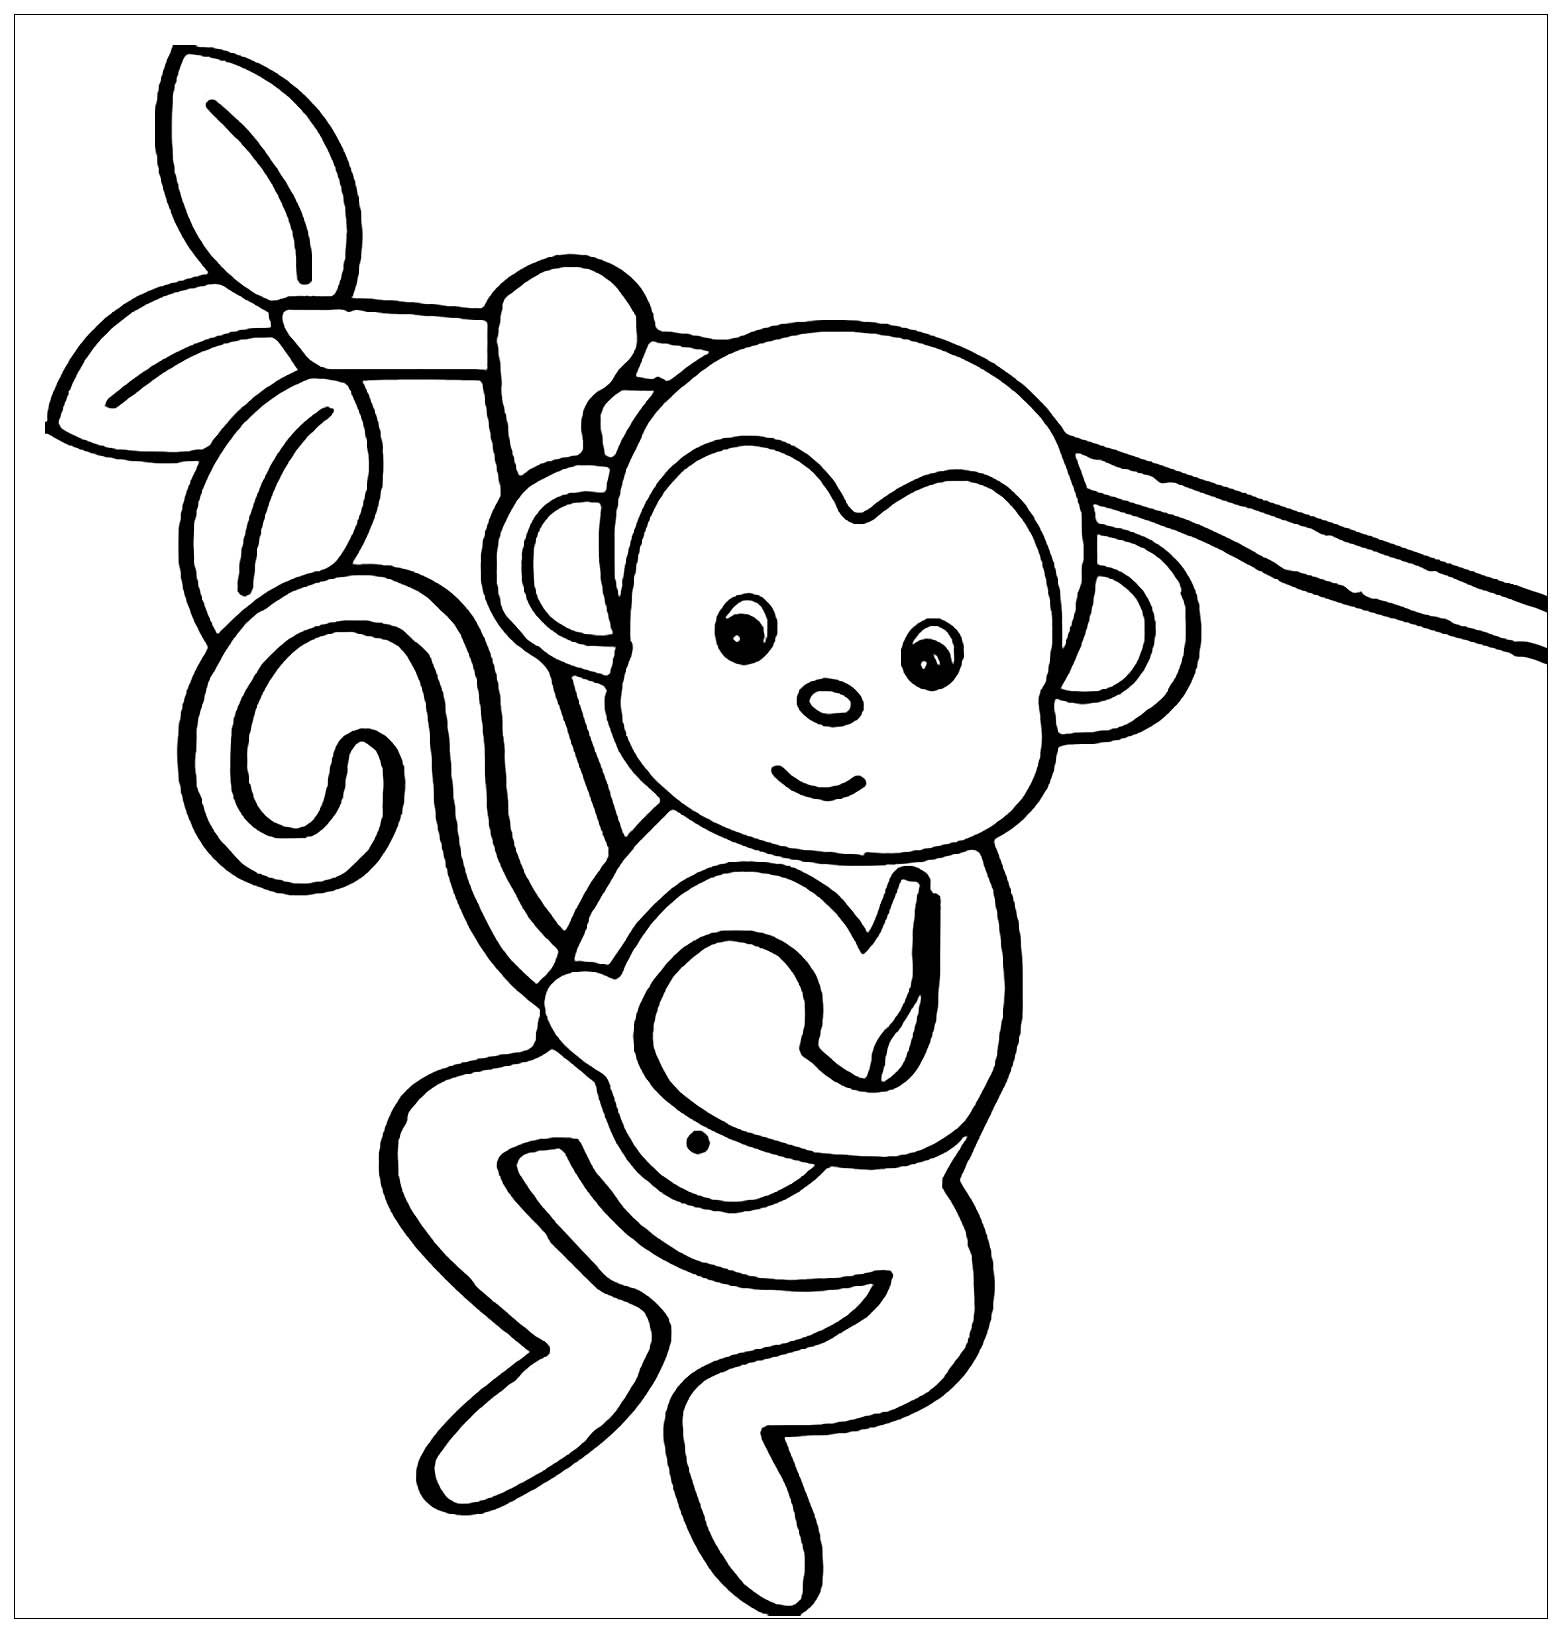 Monkey pictures to color